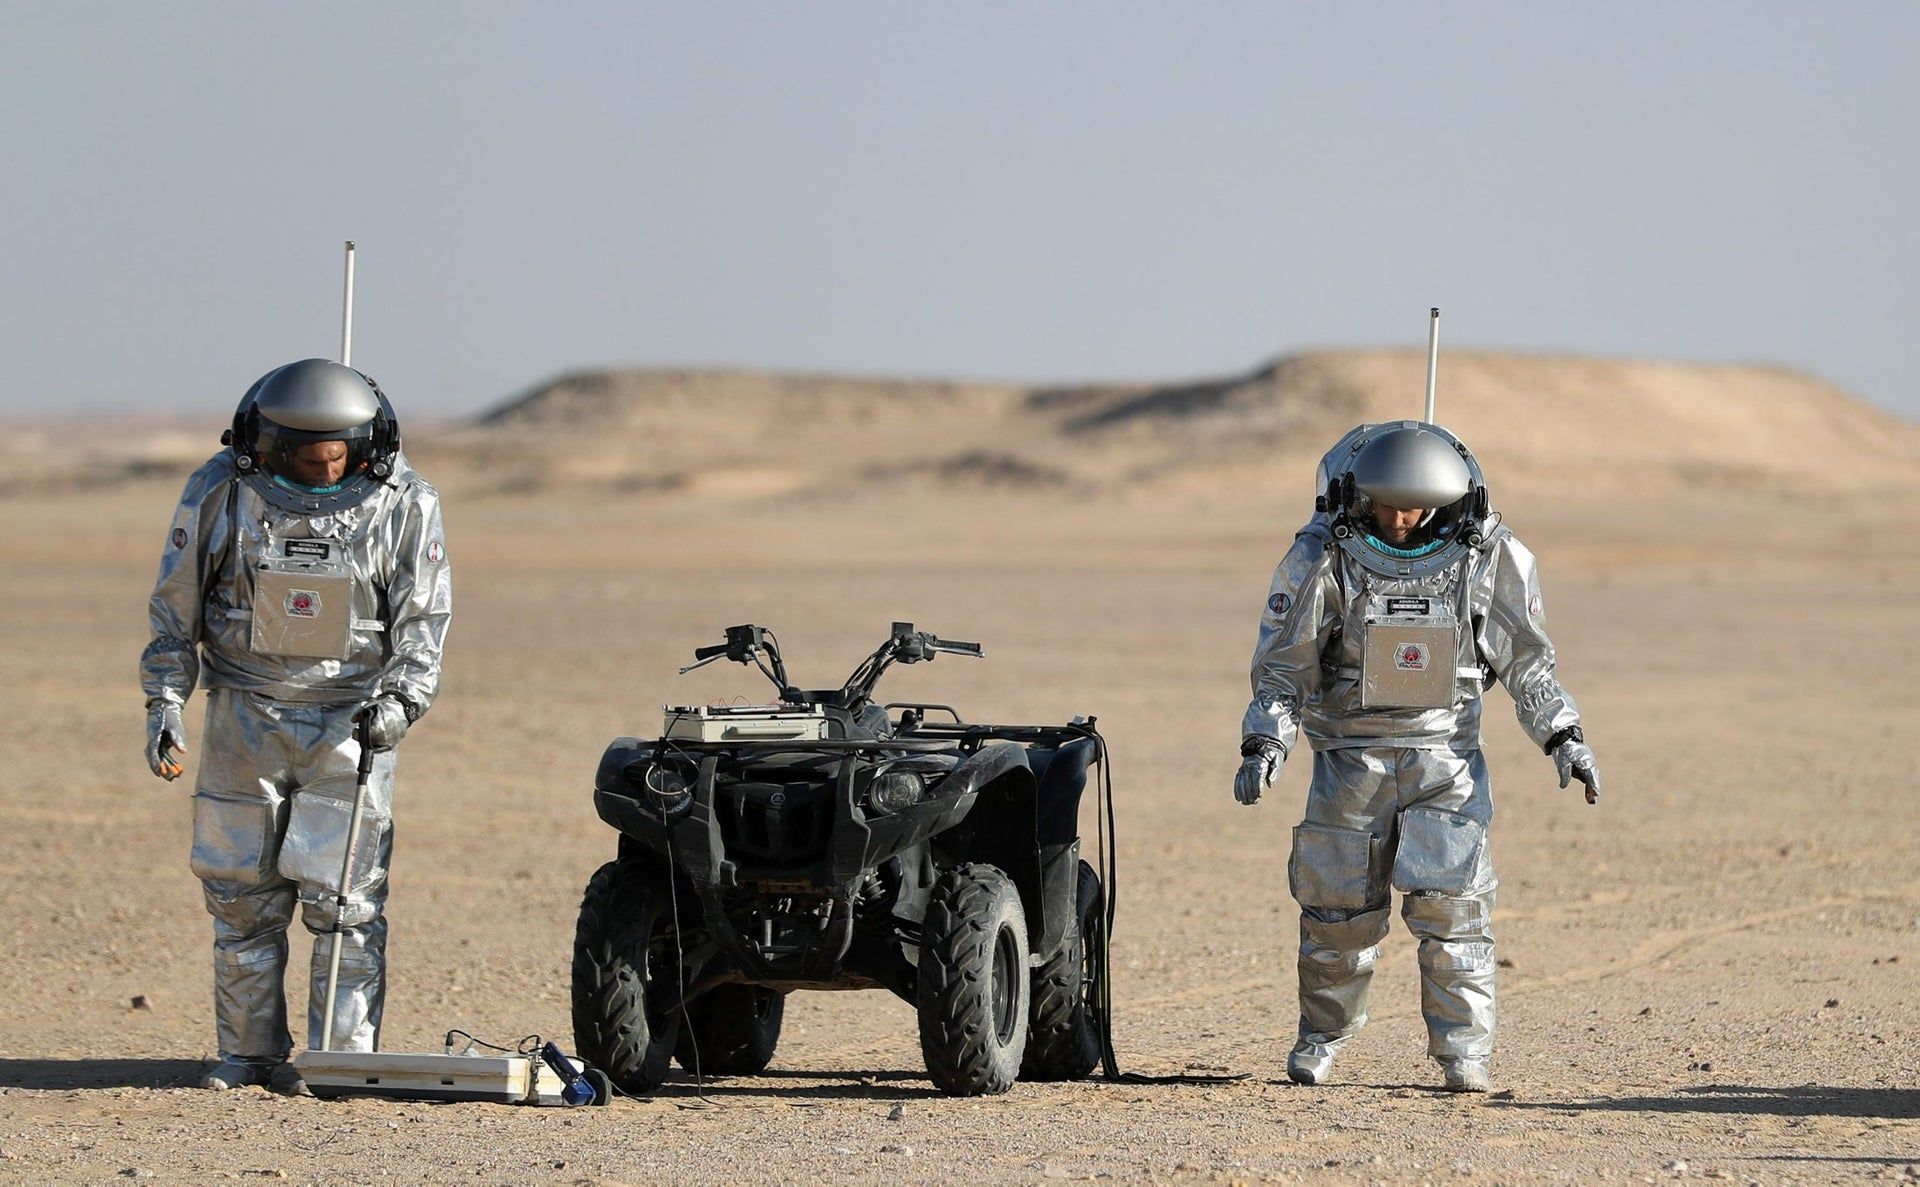 Members of the AMADEE-18 Mars simulation mission next to an all-terrain vehicle. Oman's Dhofar desert. February 7, 2018.